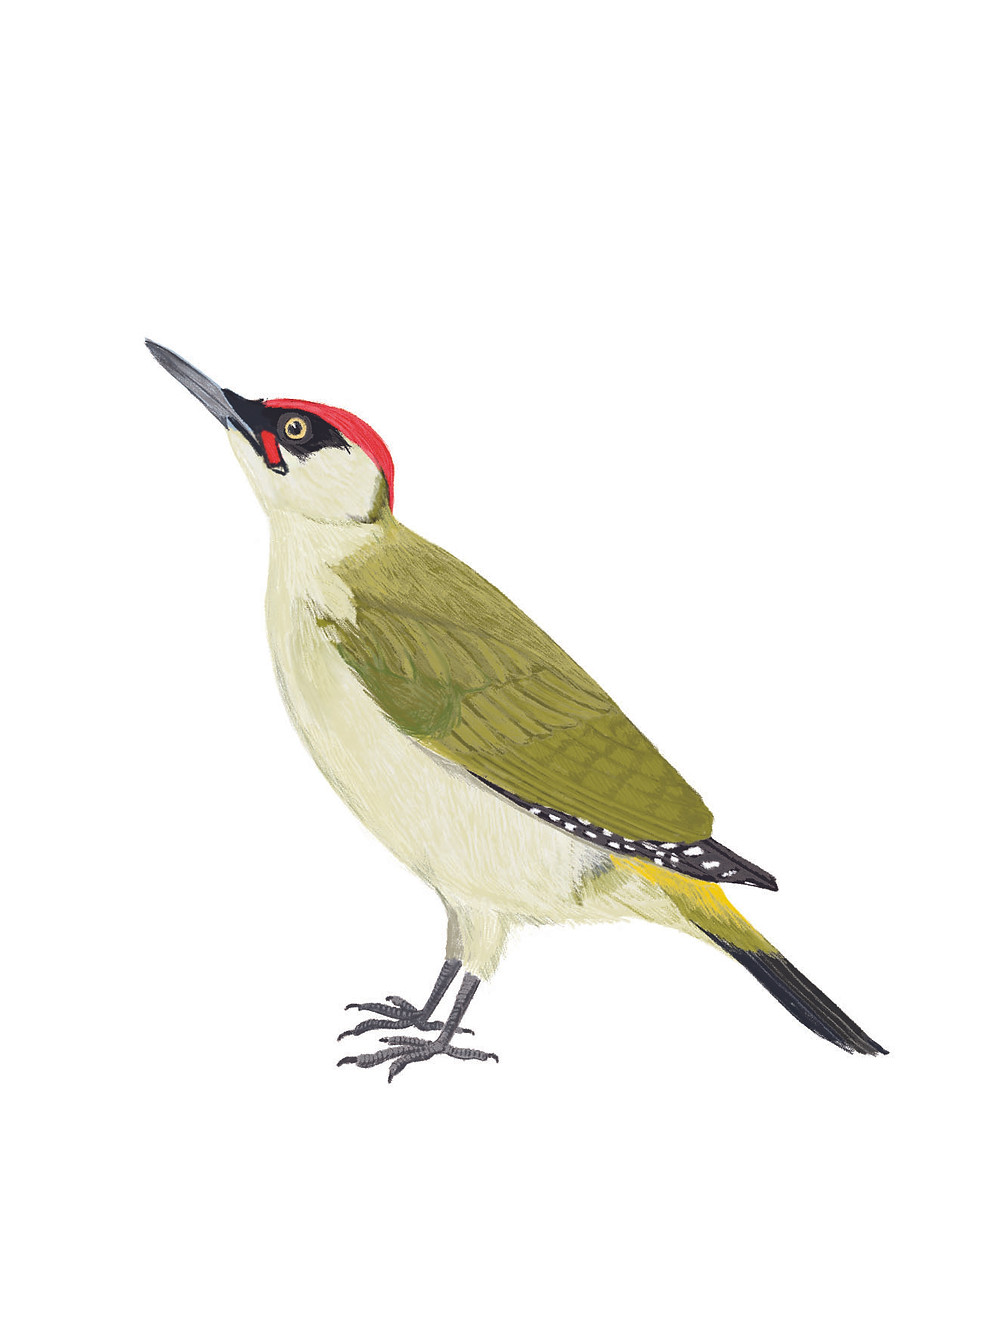 A green woodpecker digital painting after edits